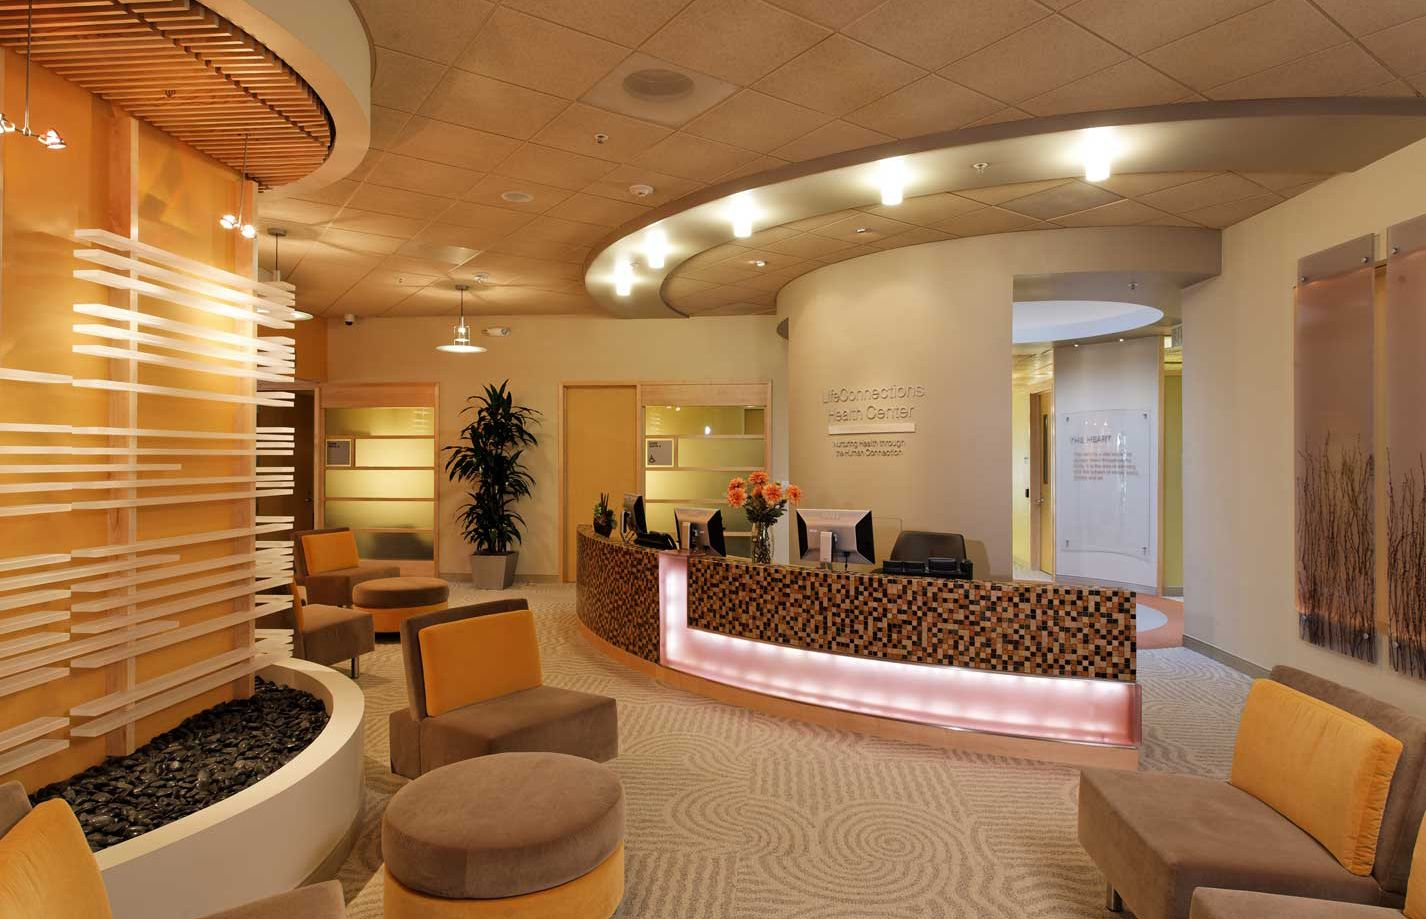 Reception and lobby waiting at the cisco systems employee for Office design wellbeing